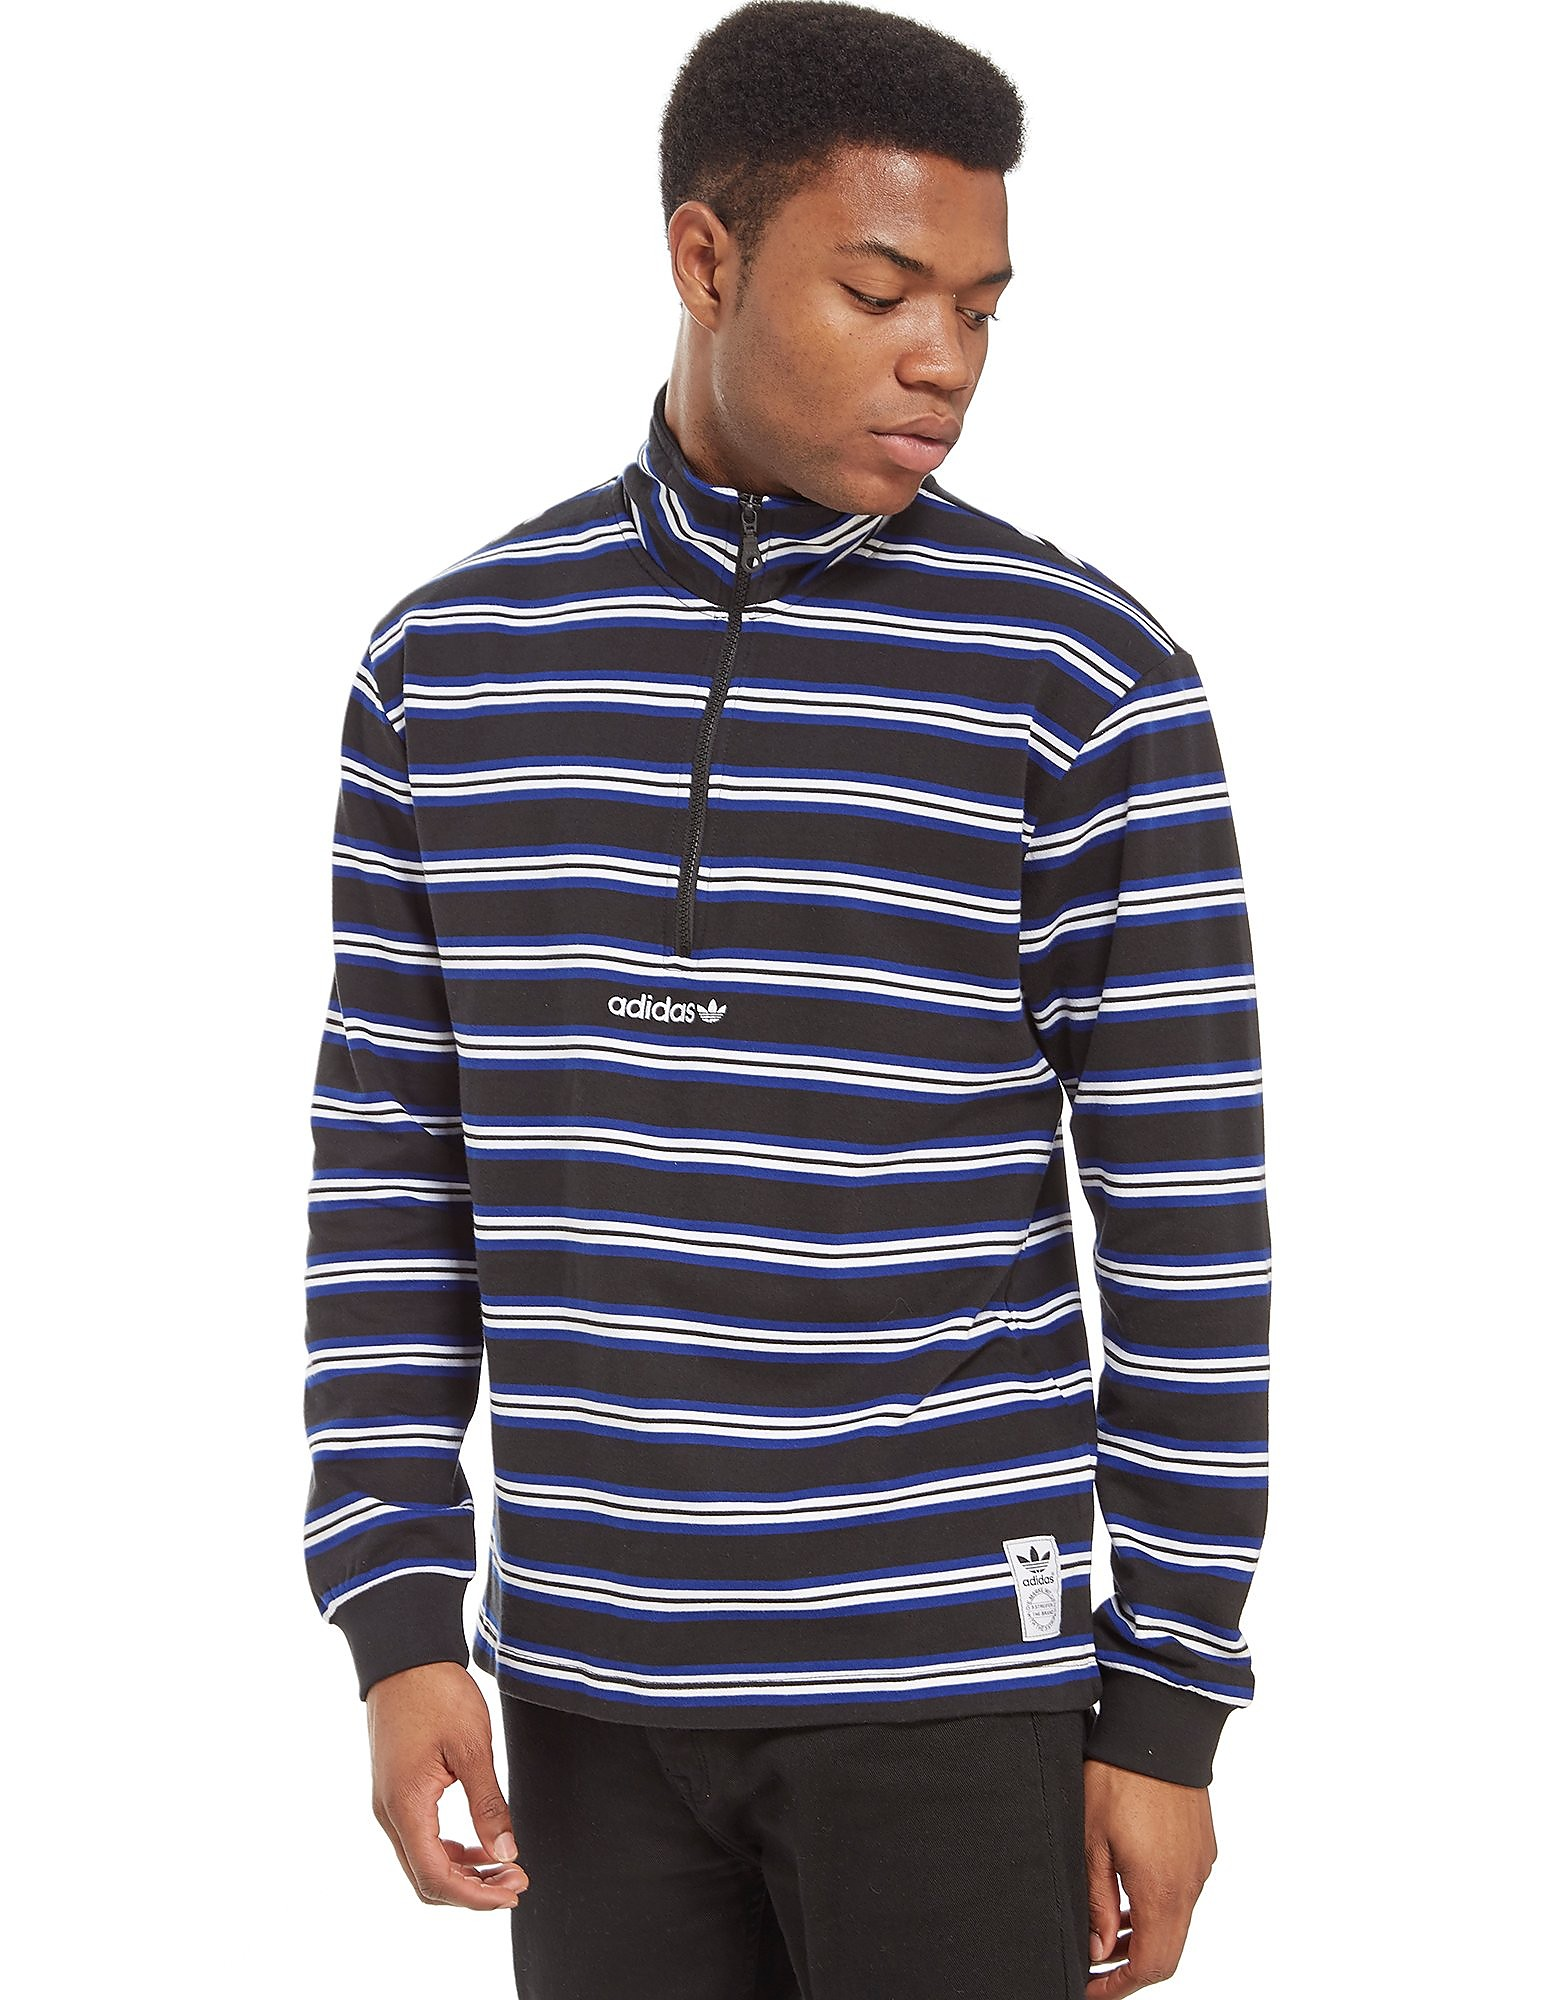 adidas Originals St Peter 1/2 Zip Sweatshirt